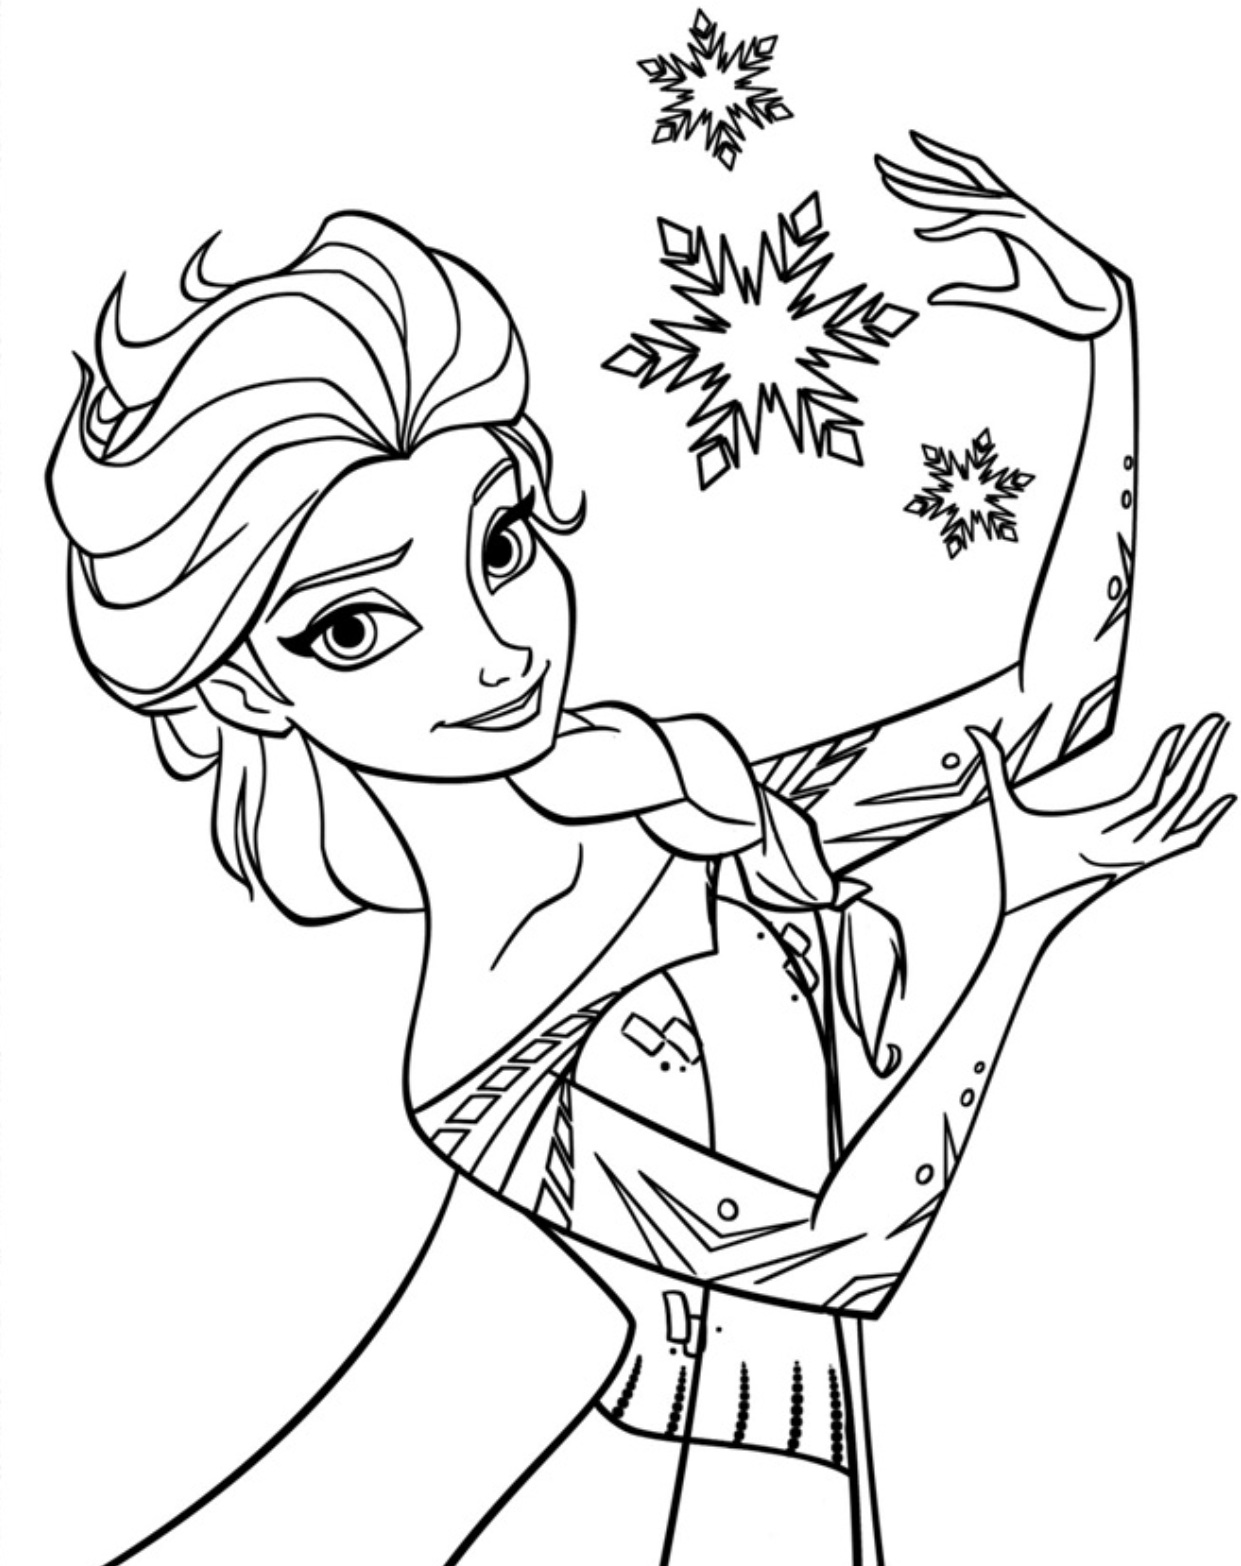 color in pictures cute coloring pages best coloring pages for kids pictures color in